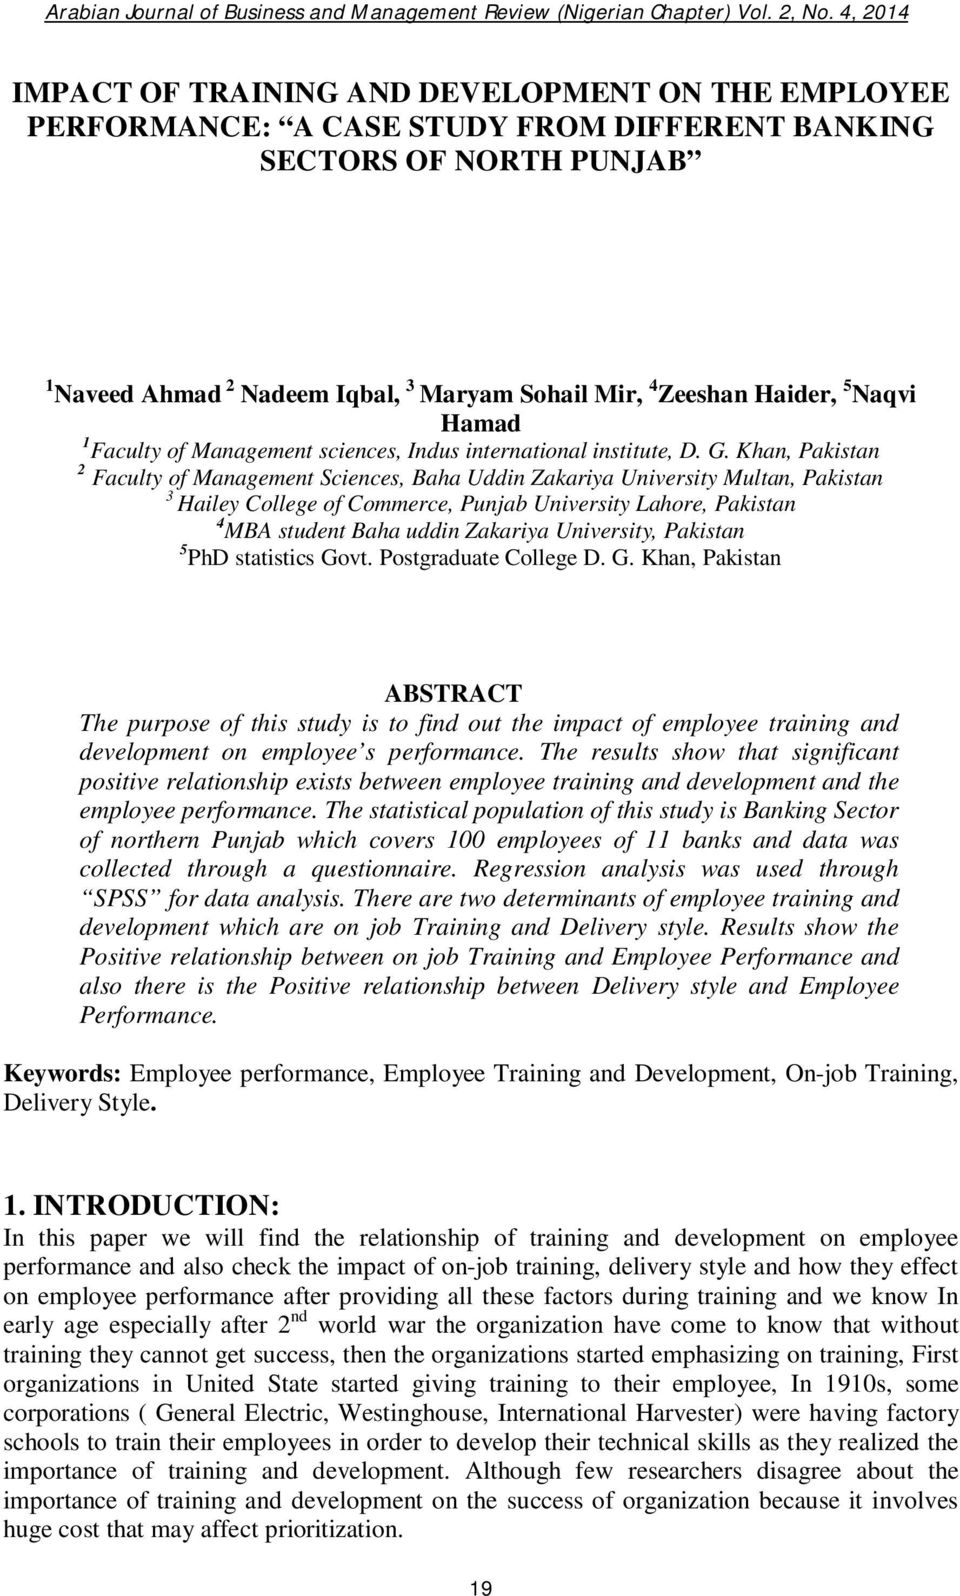 IMPACT OF TRAINING AND DEVELOPMENT ON THE EMPLOYEE PERFORMANCE: A